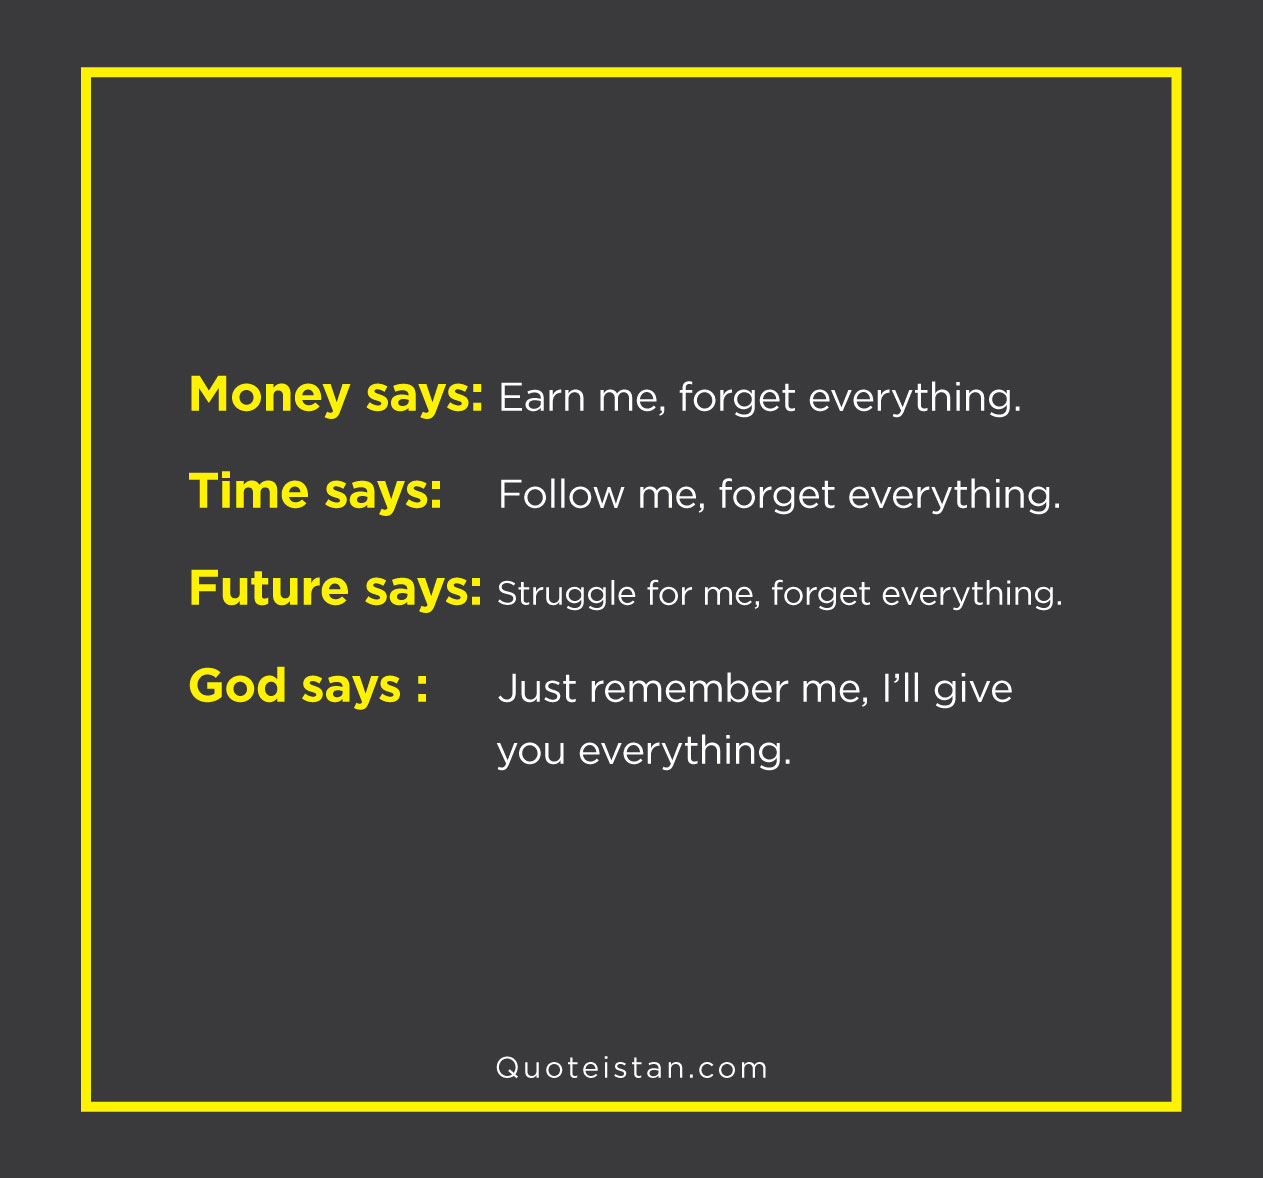 Money says: earn me,forget everything. Time says: follow me forget everything. Future says: struggle for me,forget everything. God says: just remember me,i'll give you everything .